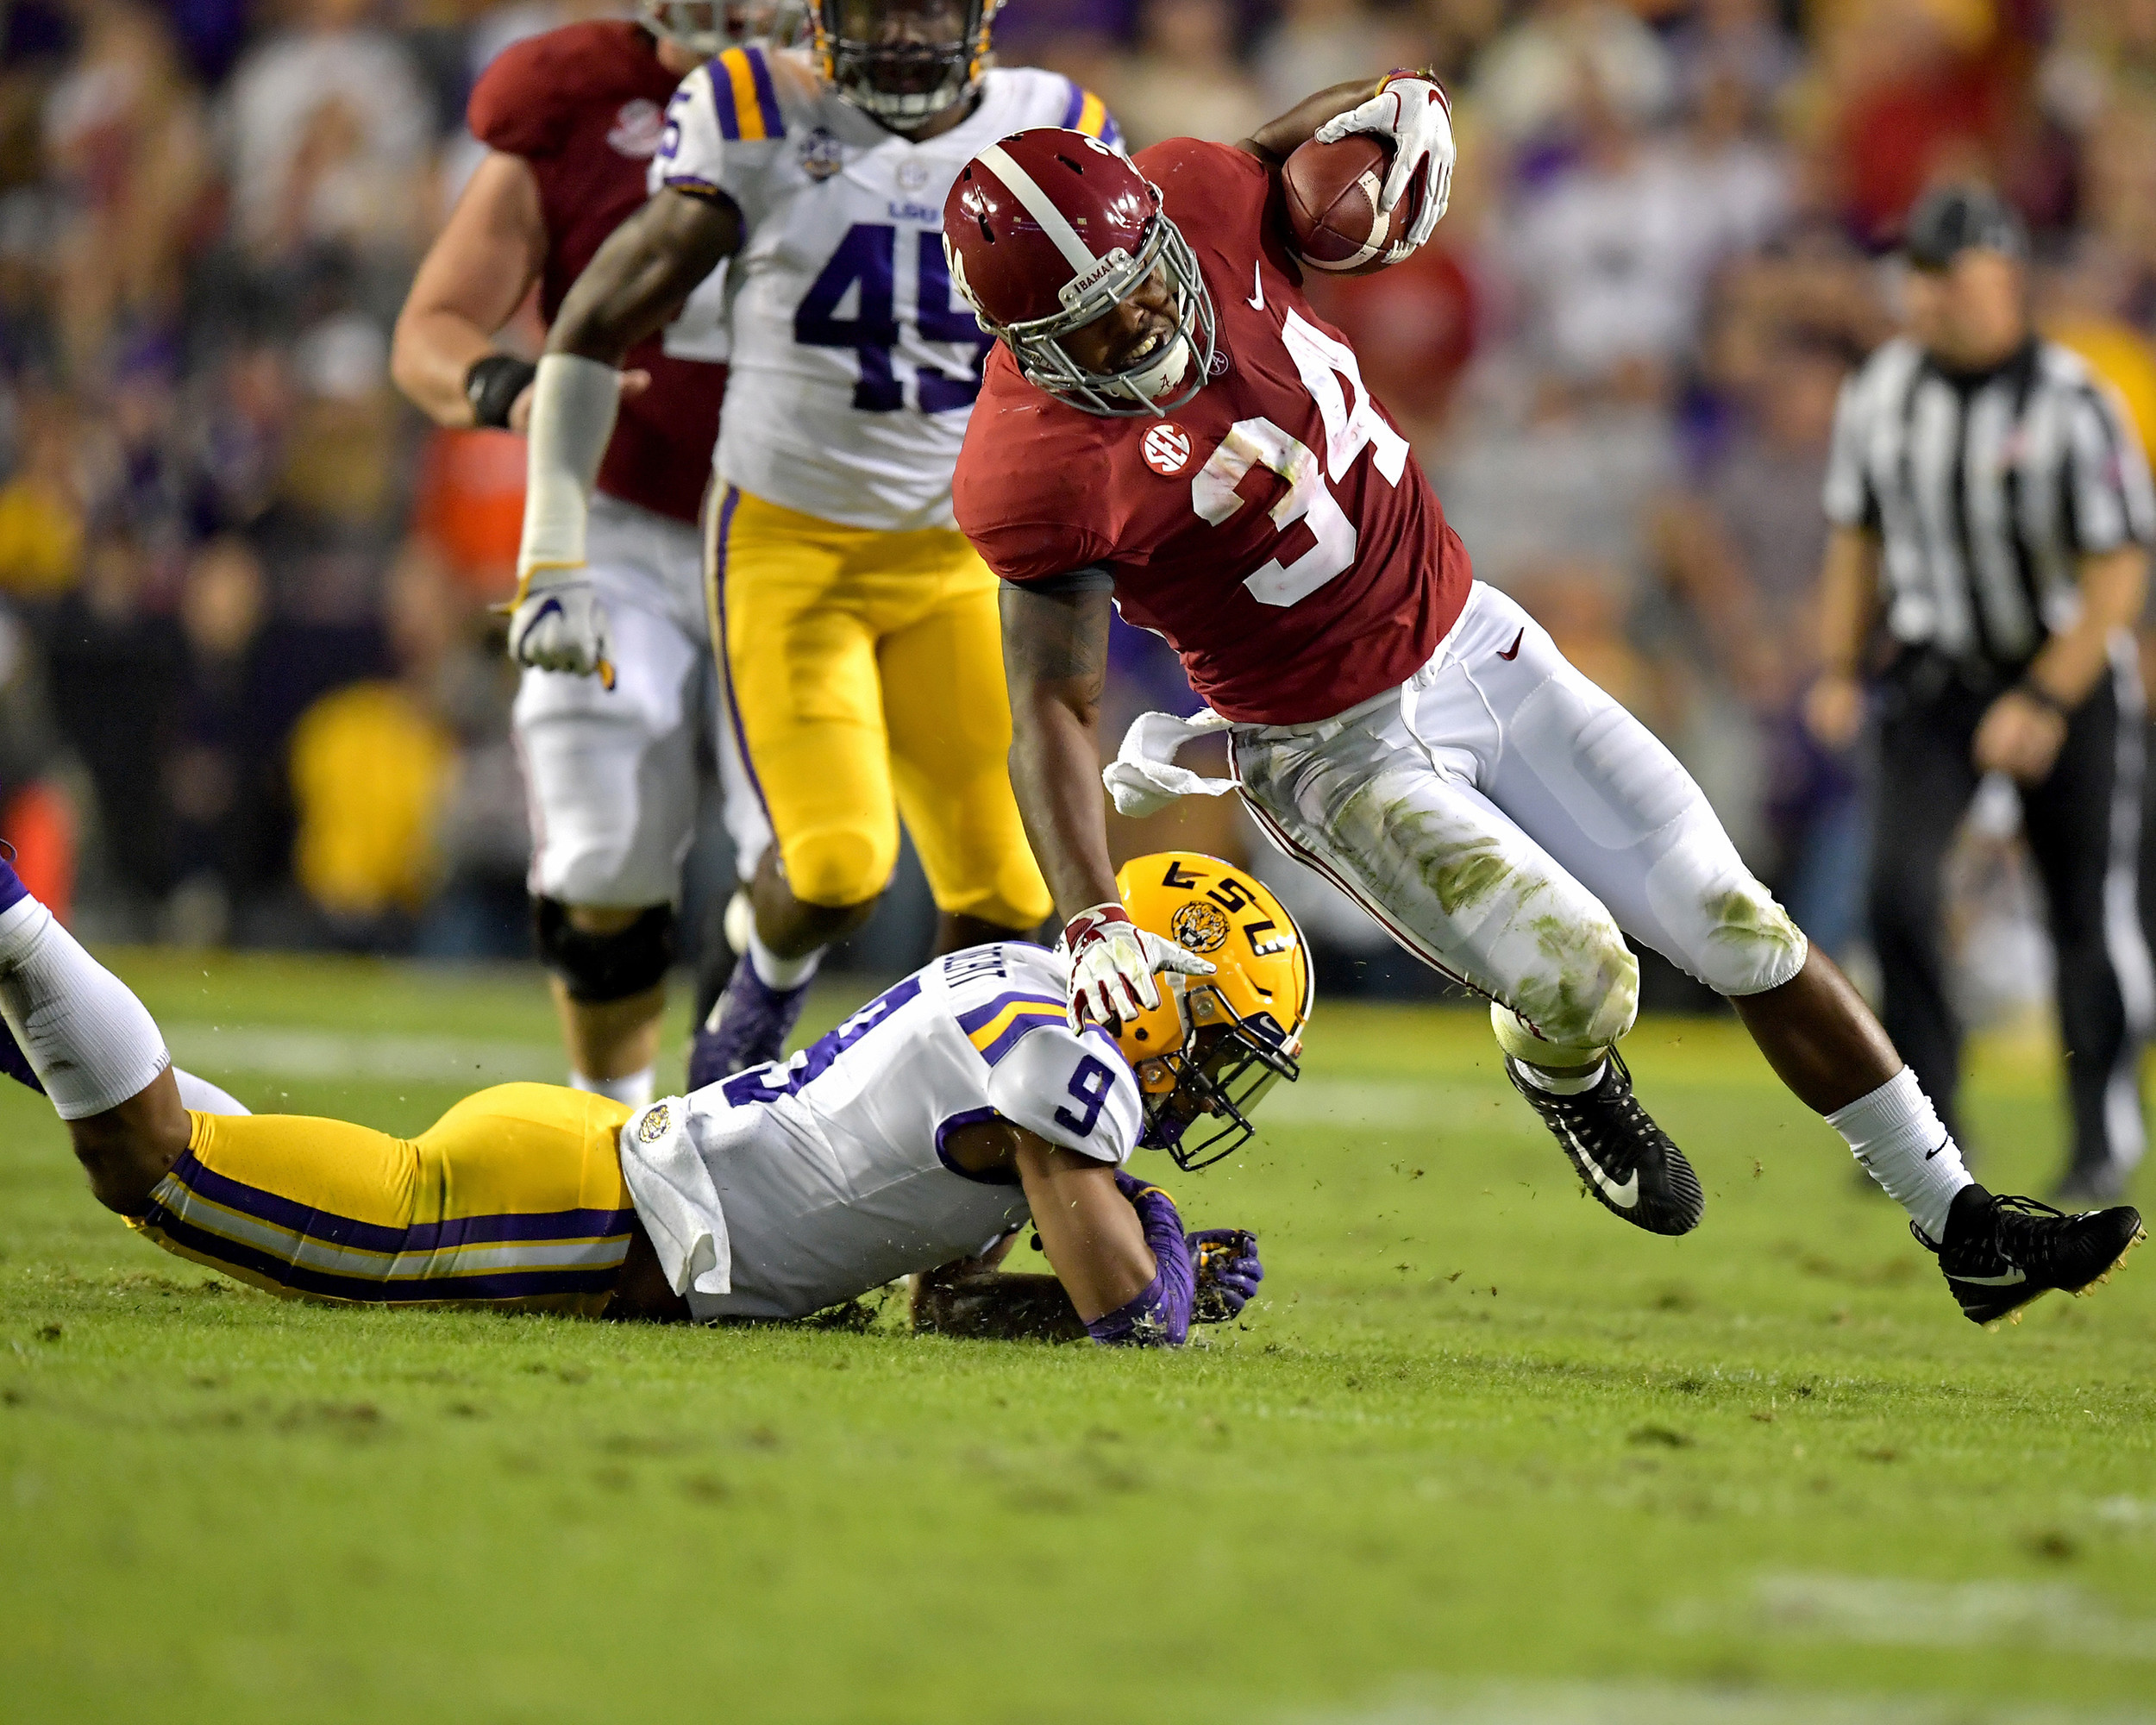 Alabama Crimson Tide running back Damien Harris (34) on a carry in the first quarter of an NCAA football game against the LSU Tigers Saturday, November 3, 2018, at Tiger Stadium in Baton Rouge, La.  Alabama wins 29-0. (Photo by Lee Walls)